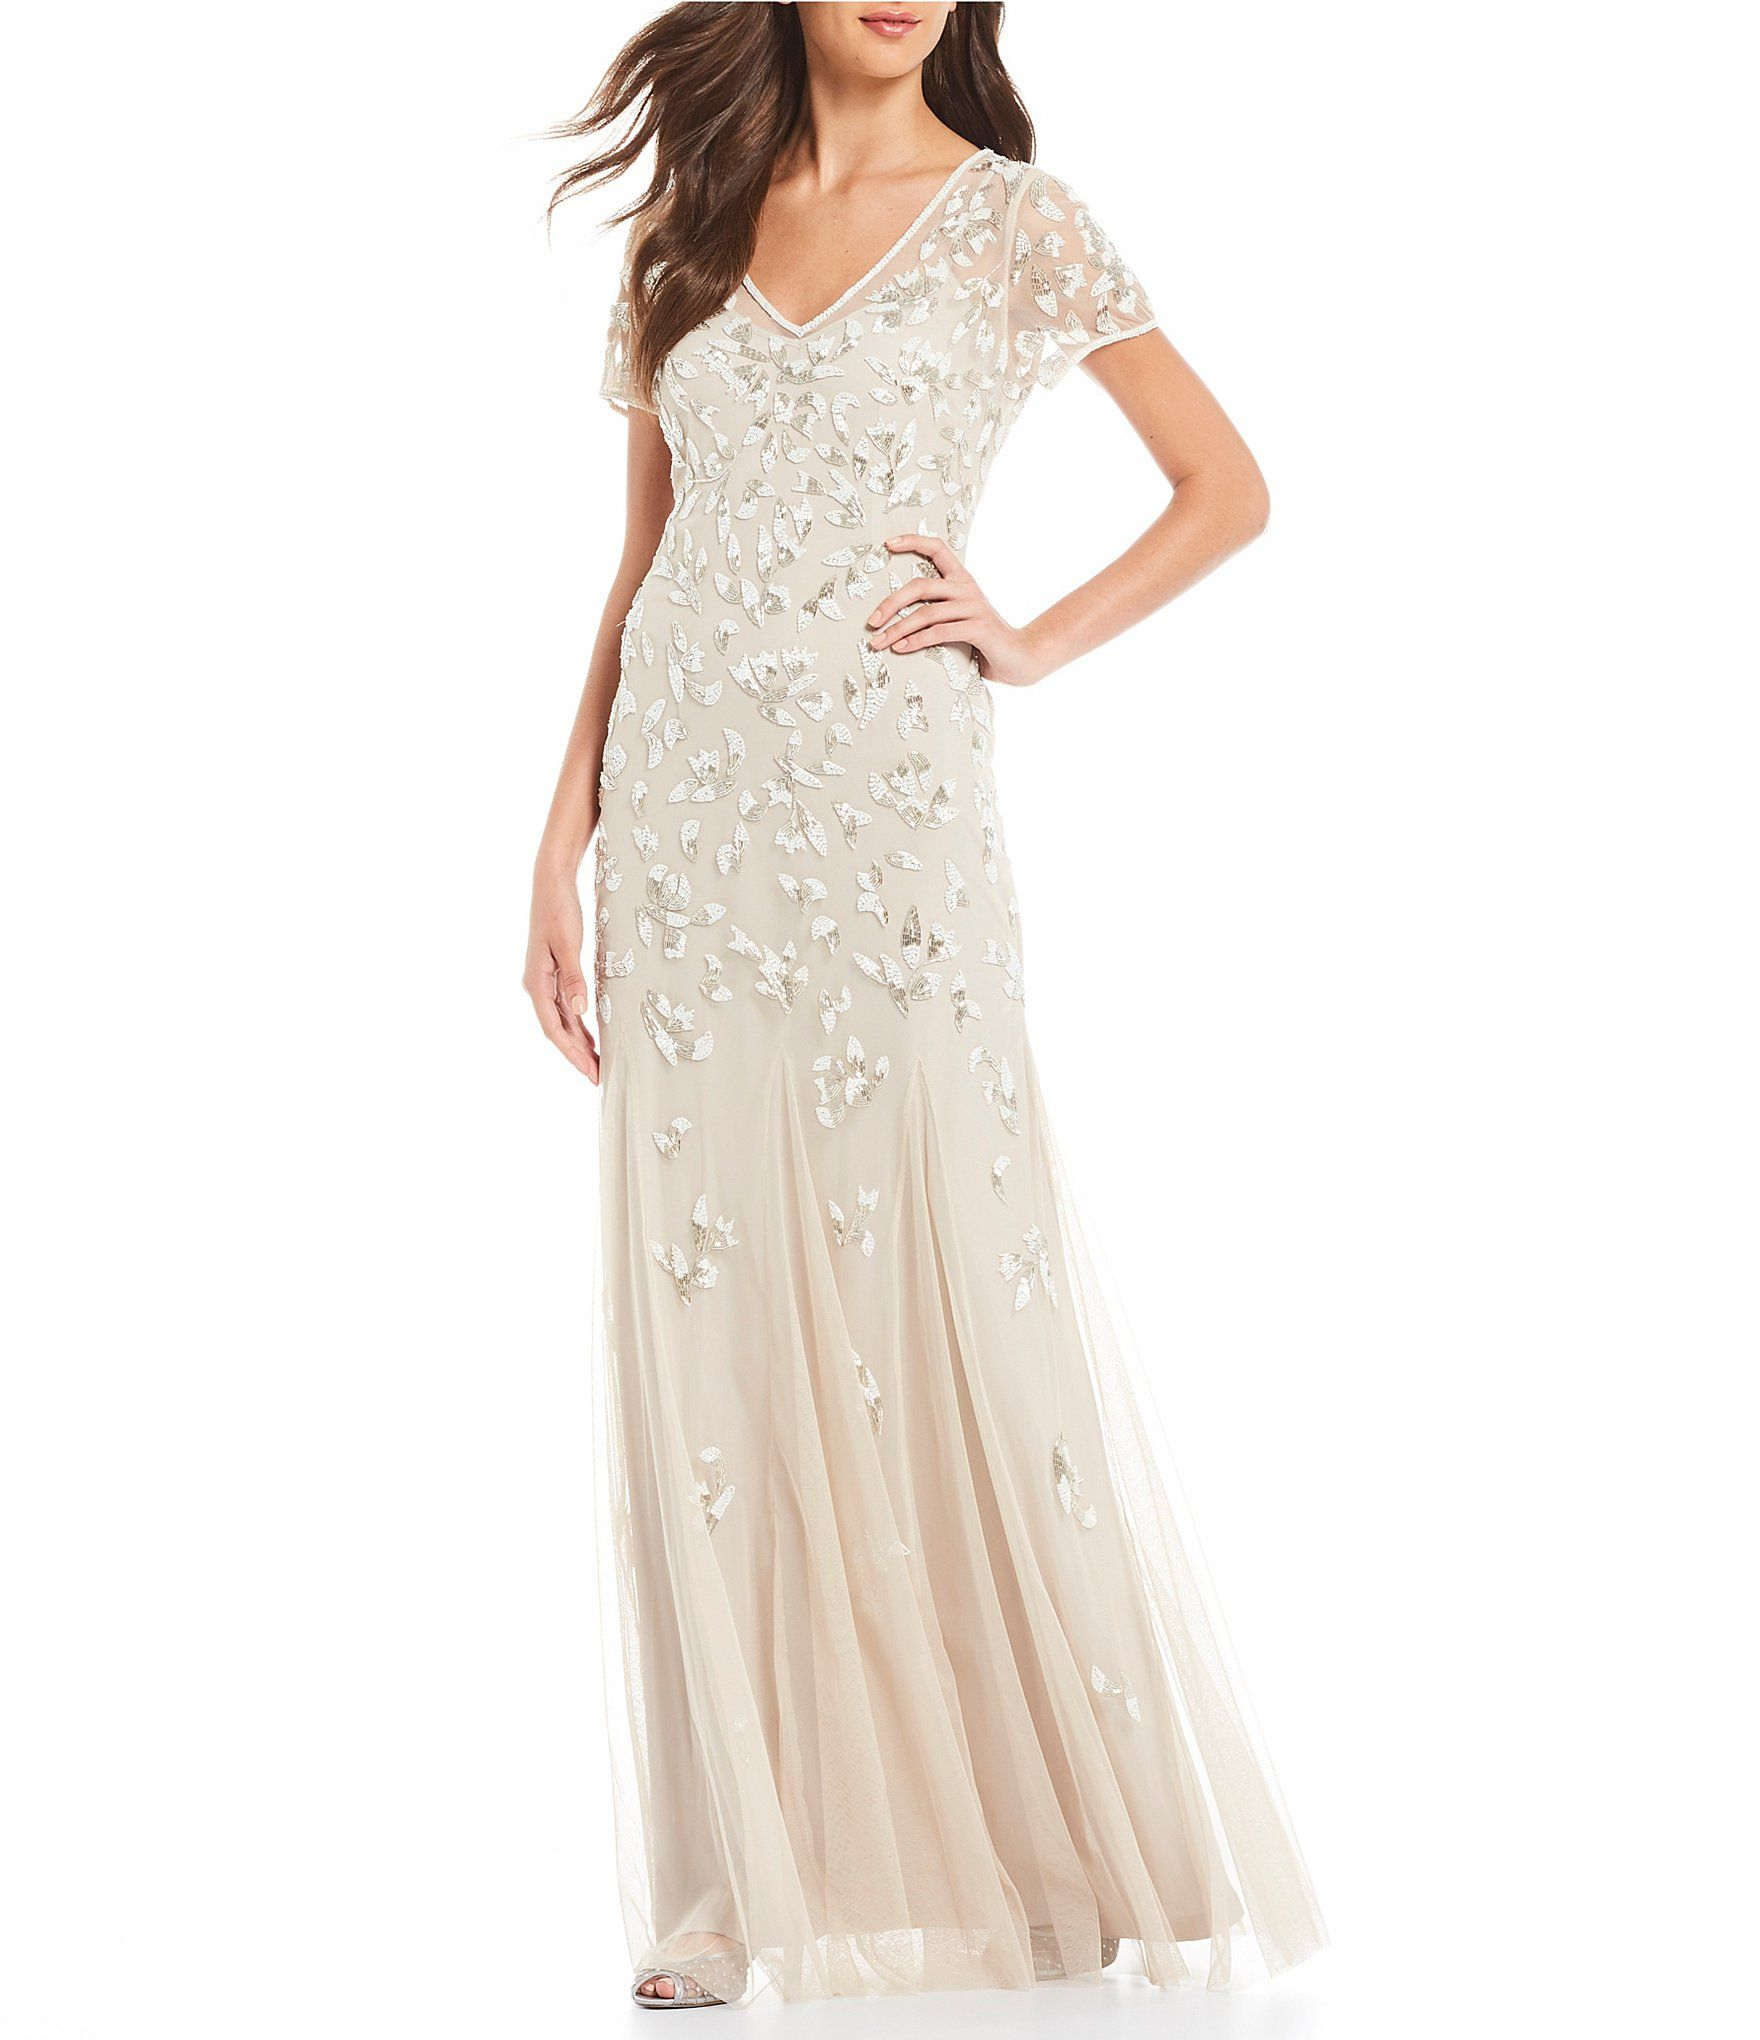 Shop For Adrianna Papell Illusion Mesh V Neck Beaded Gown At Dillards Com Visit Dillards Dillards Wedding Dresses Pretty Wedding Dresses Wedding Dress Gallery